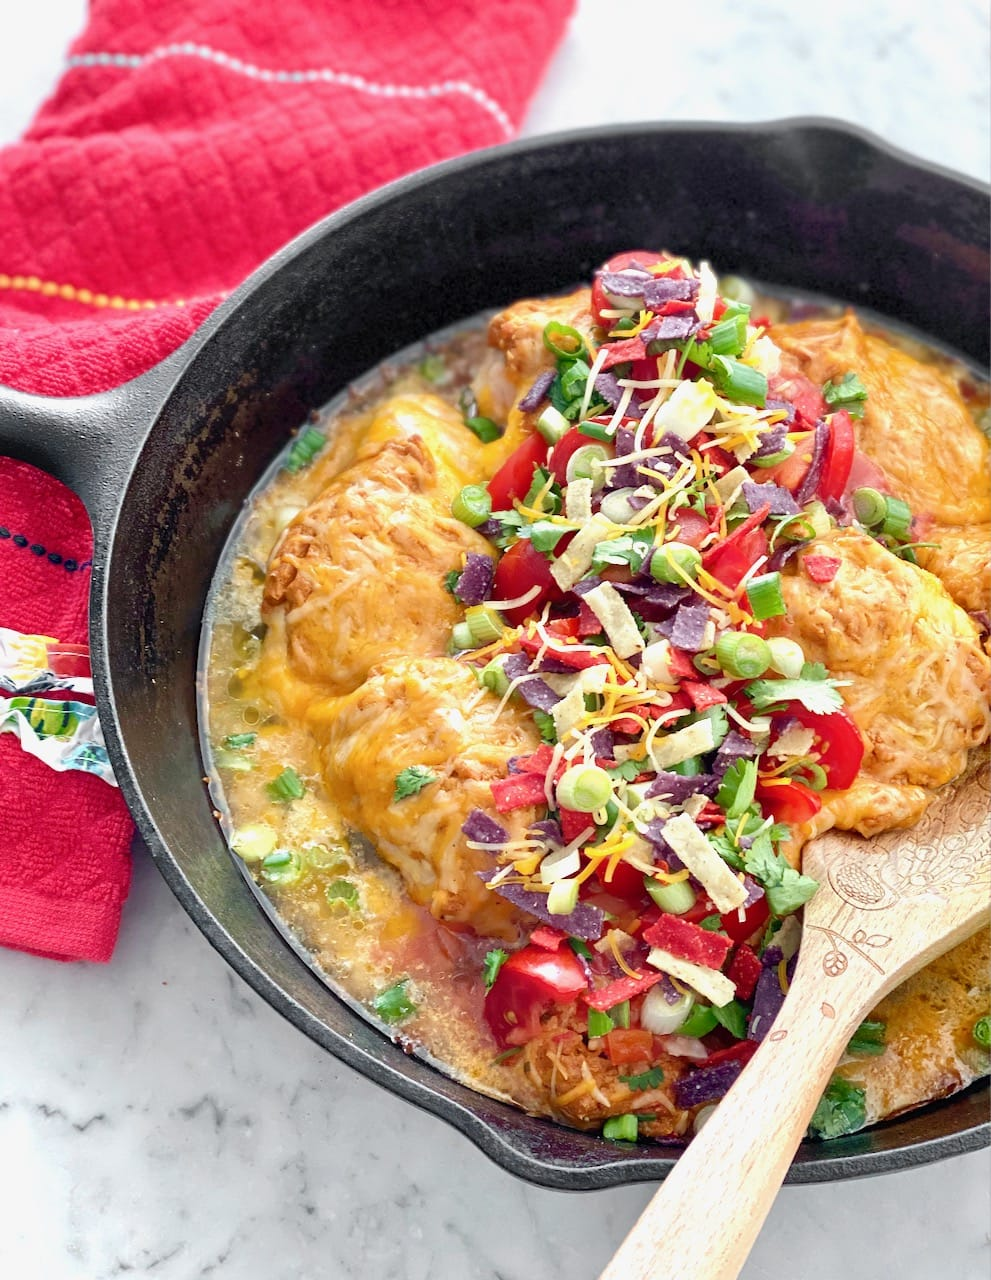 cast iron skillet filled with chicken covered in cheese, tomatoes, onions and cilantro in a cast iron skillet.